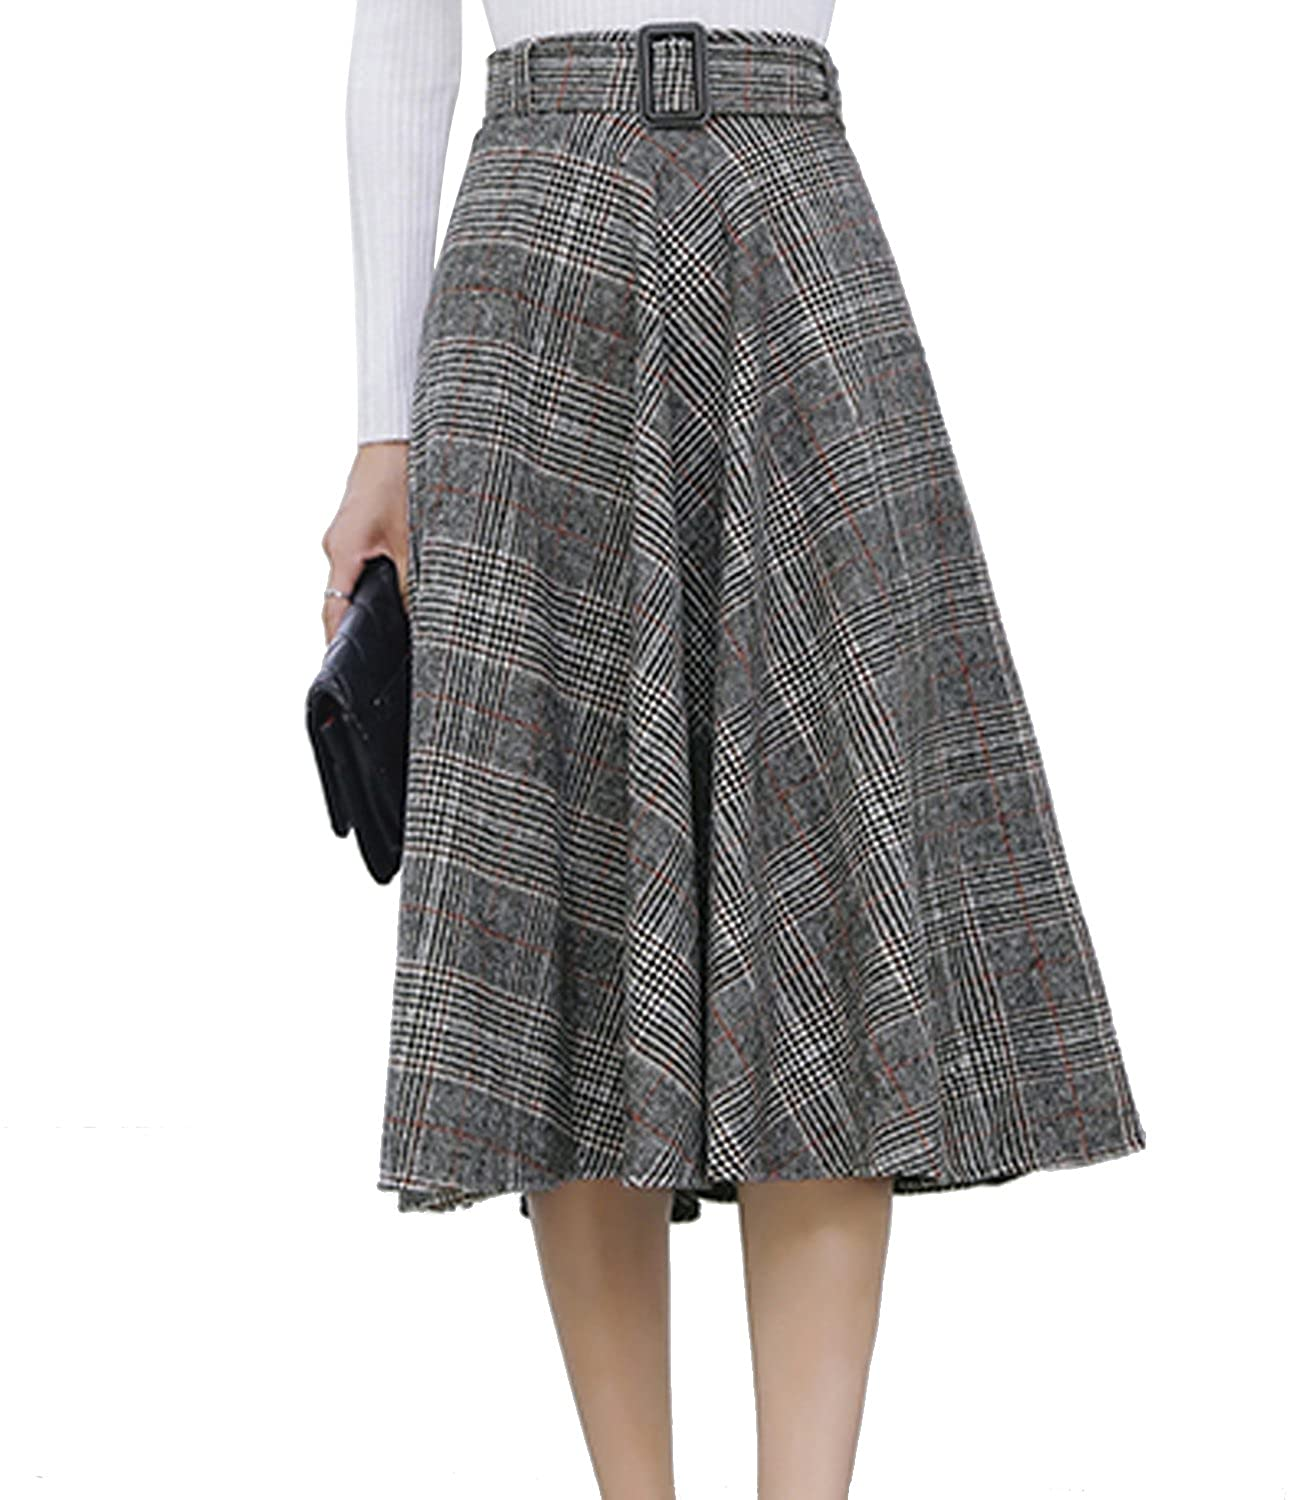 Wonder Woman Movie 1918 Clothing: Diana's London Costumes Sanifer Womens Warm Woolen Plaid Gray Pleated A Line Skirt with Belt $27.99 AT vintagedancer.com